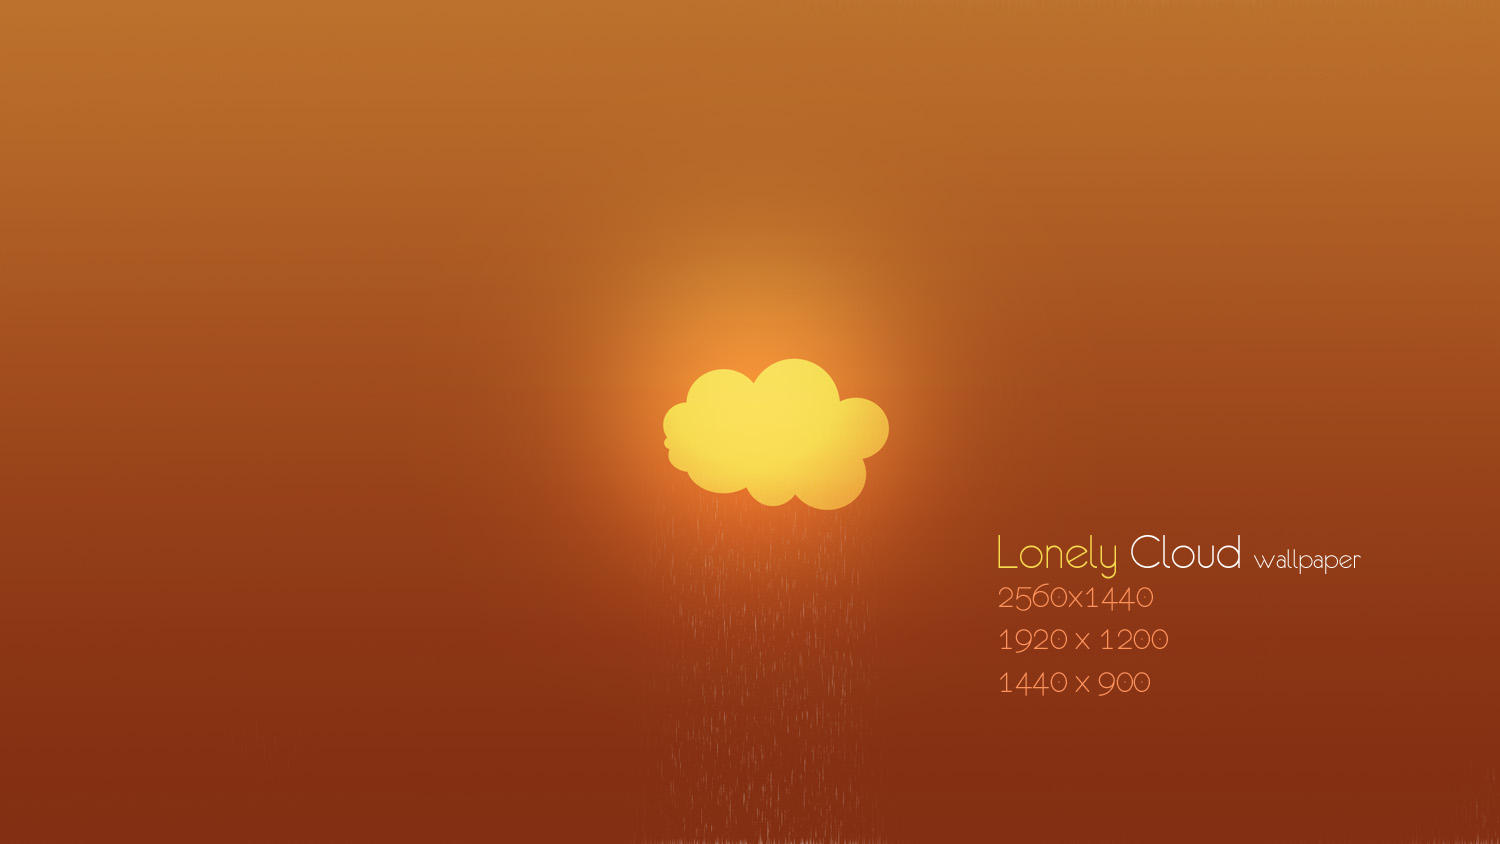 Lonely Cloud Wallpaper by Martz90